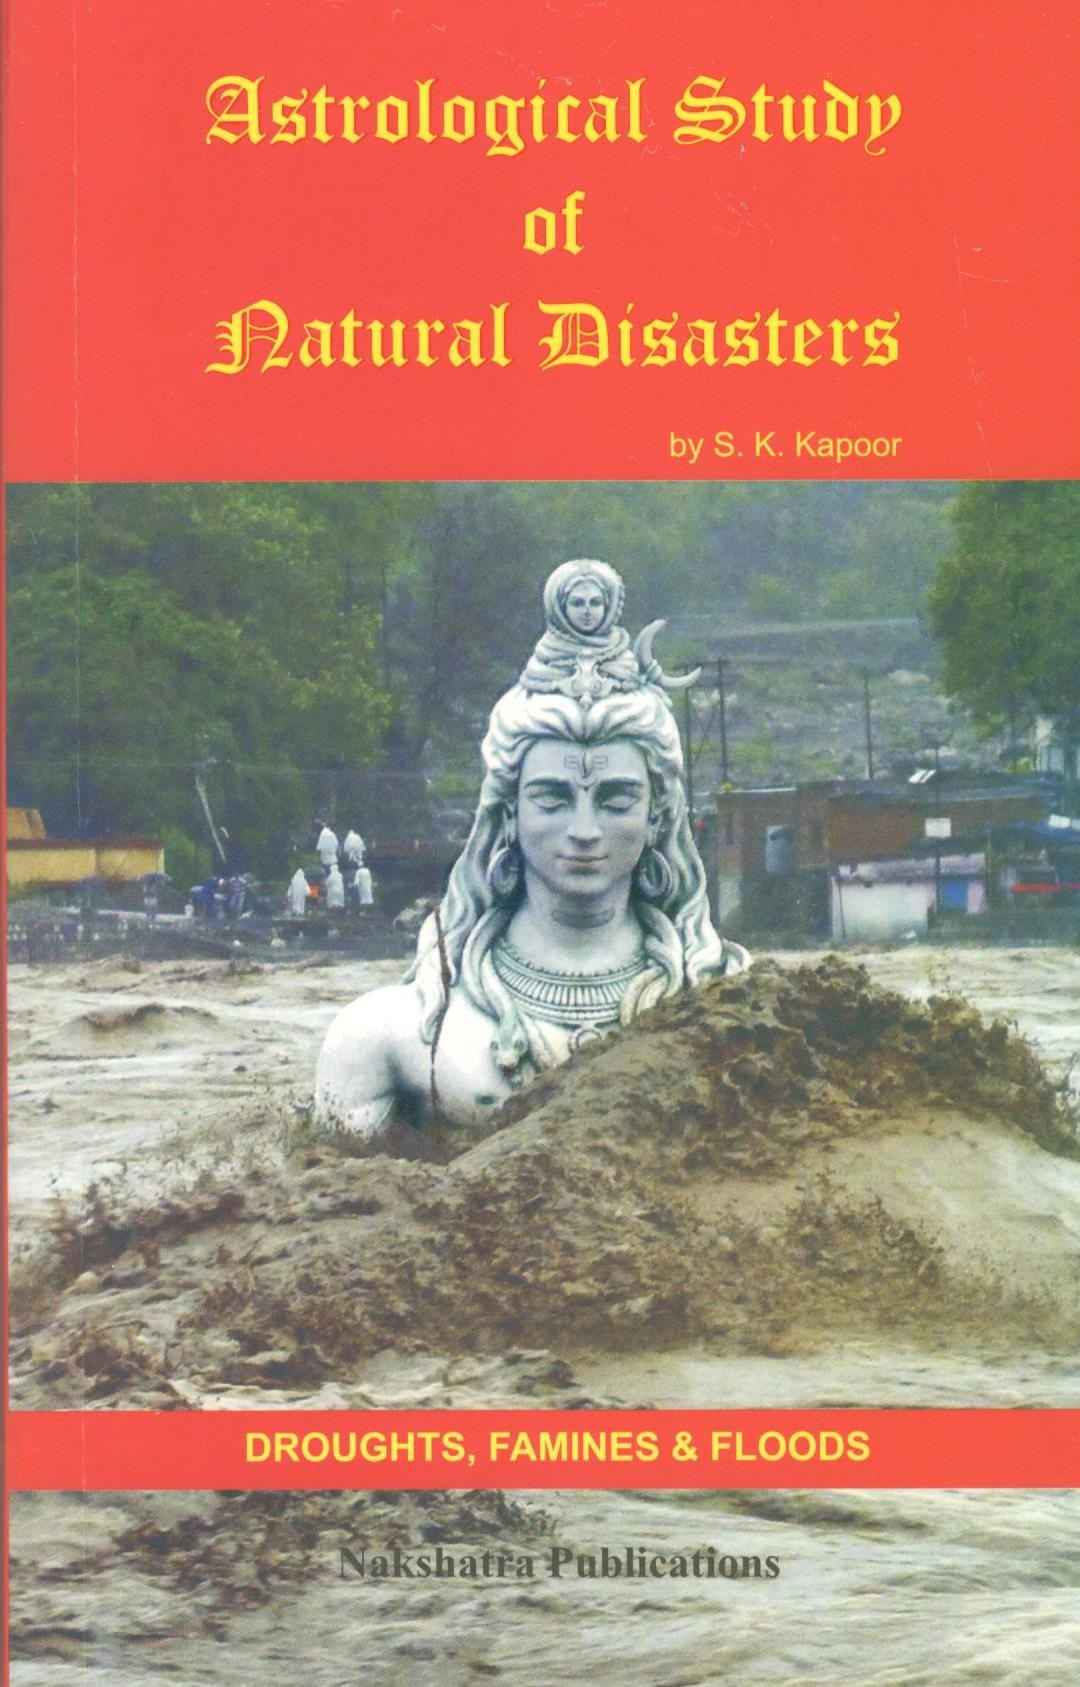 Astrological Study of Natural Disasters